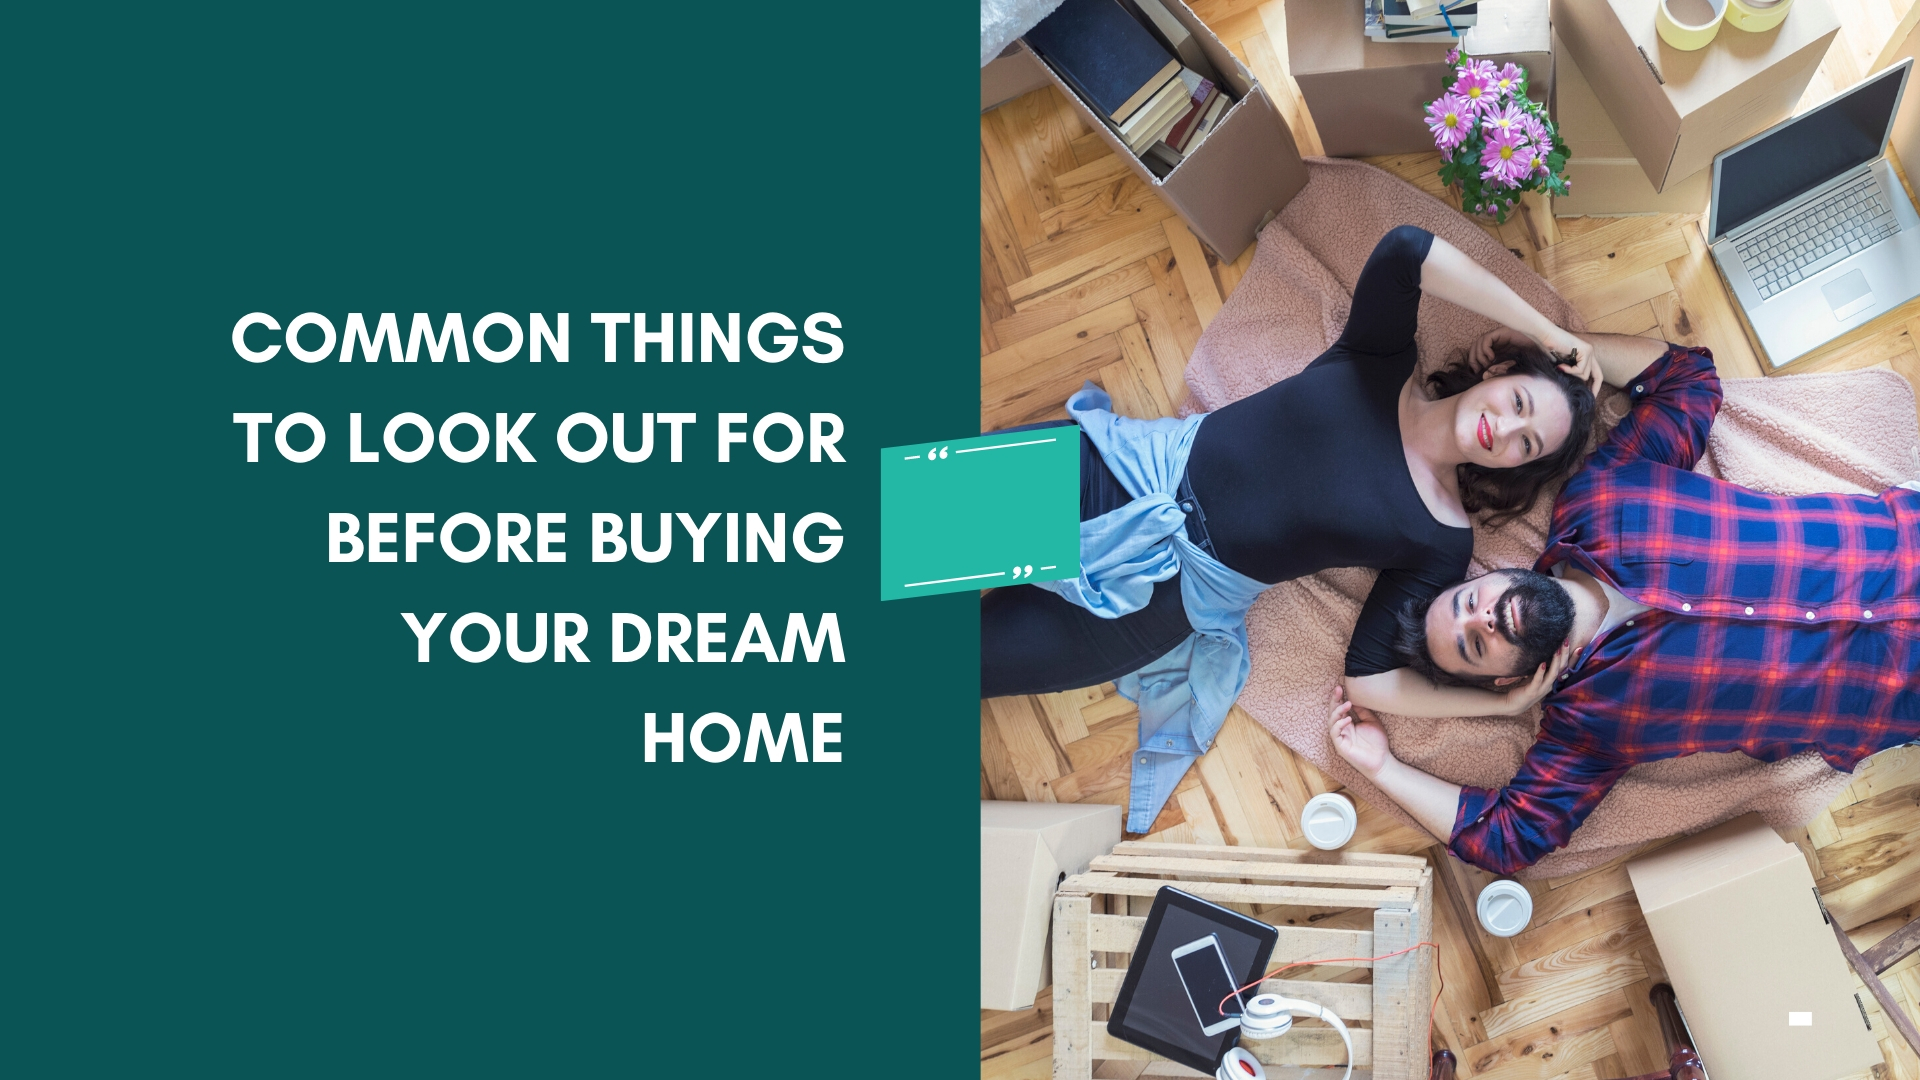 Common Things to Look Out for Before Buying Your Dream Home